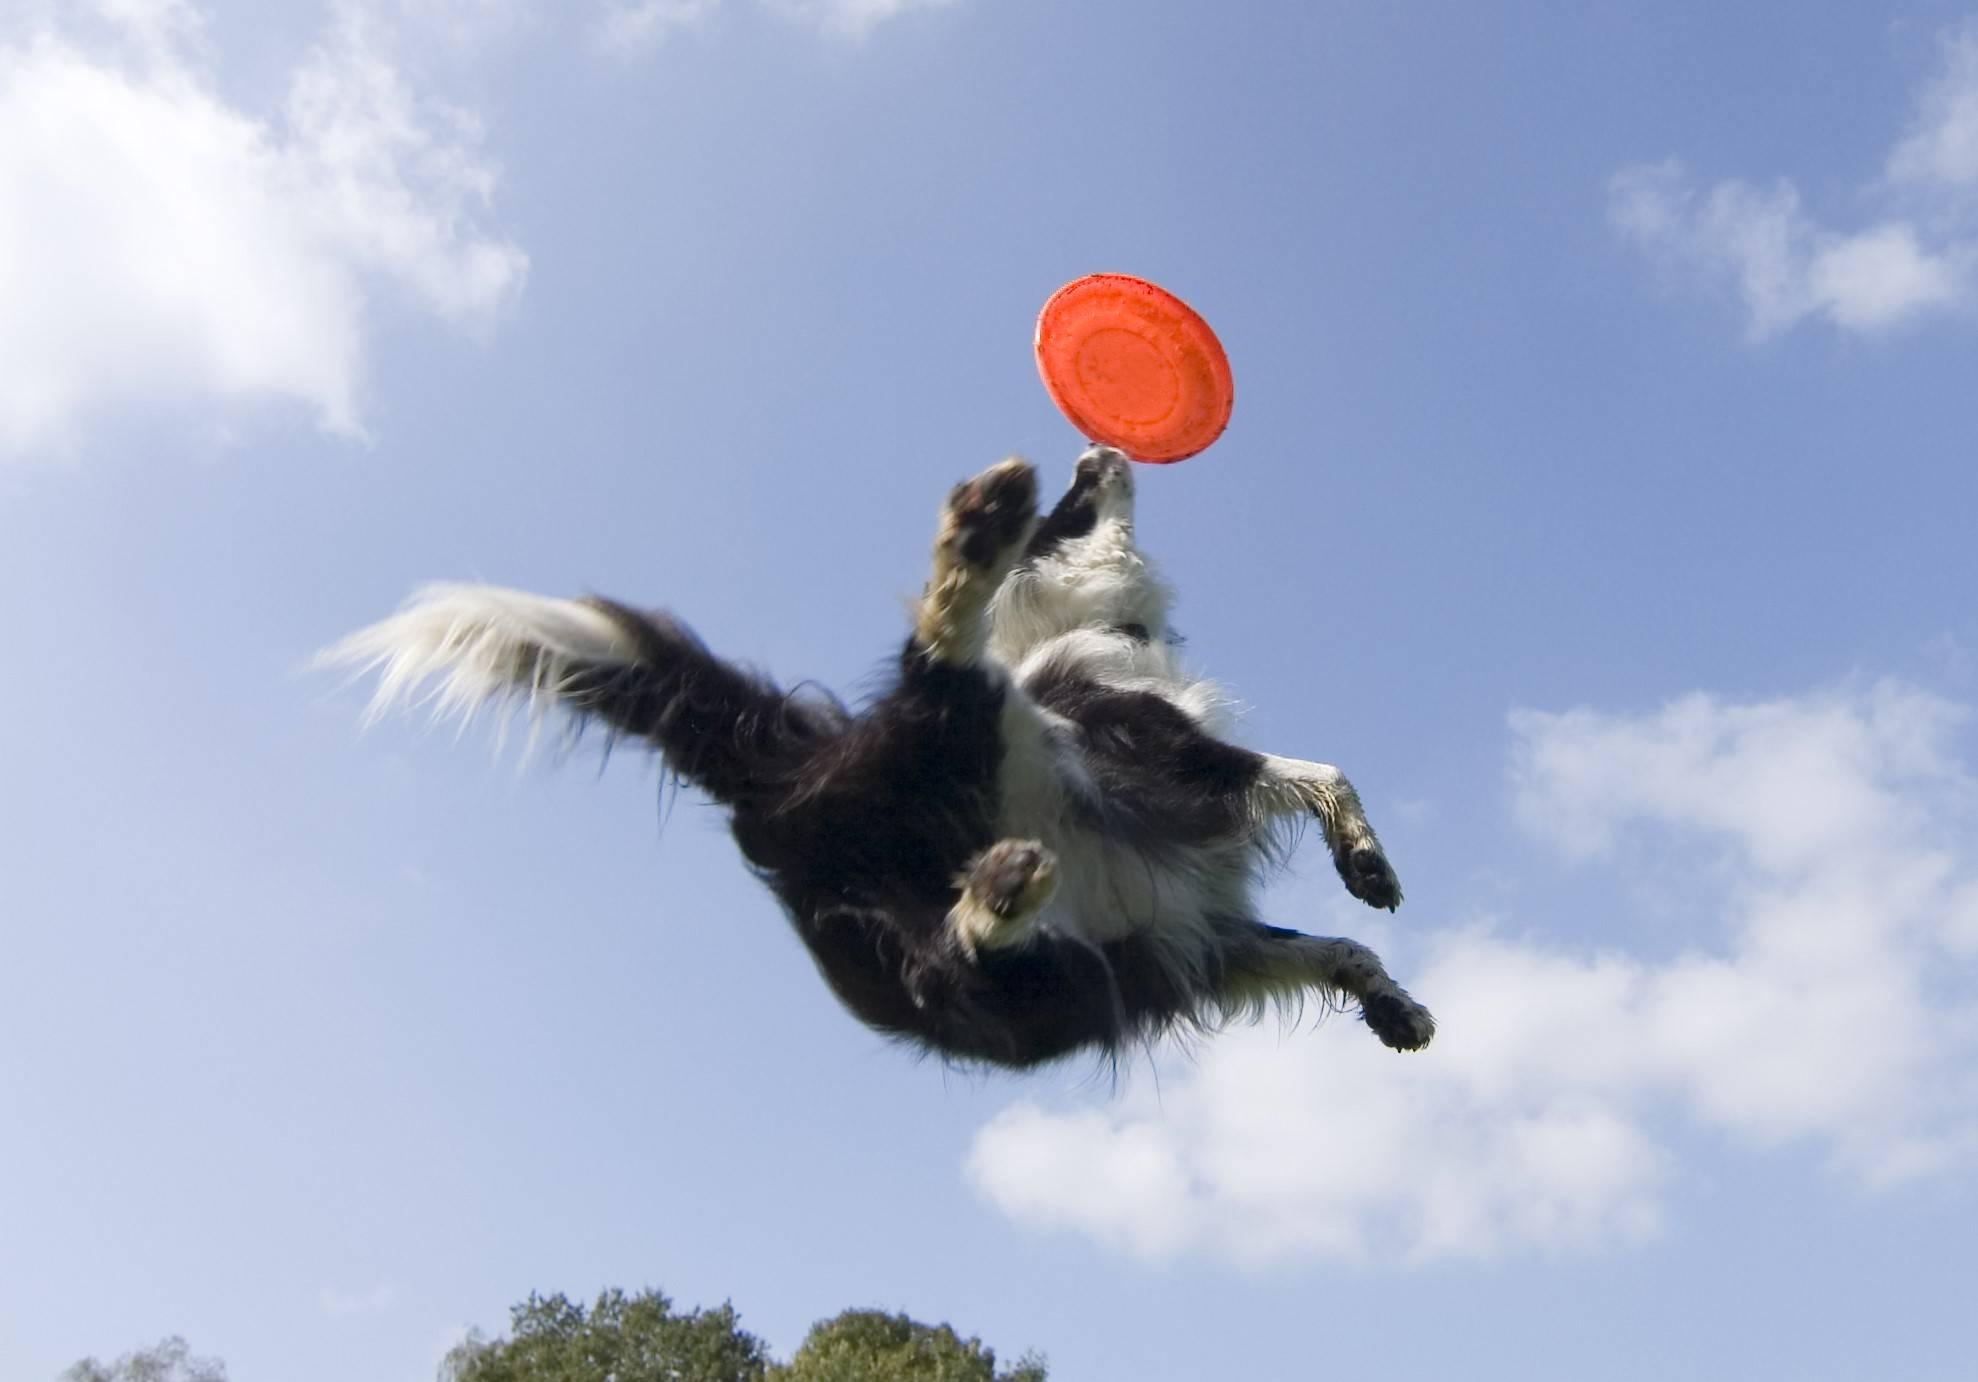 A collie dog jumping for a frisbee